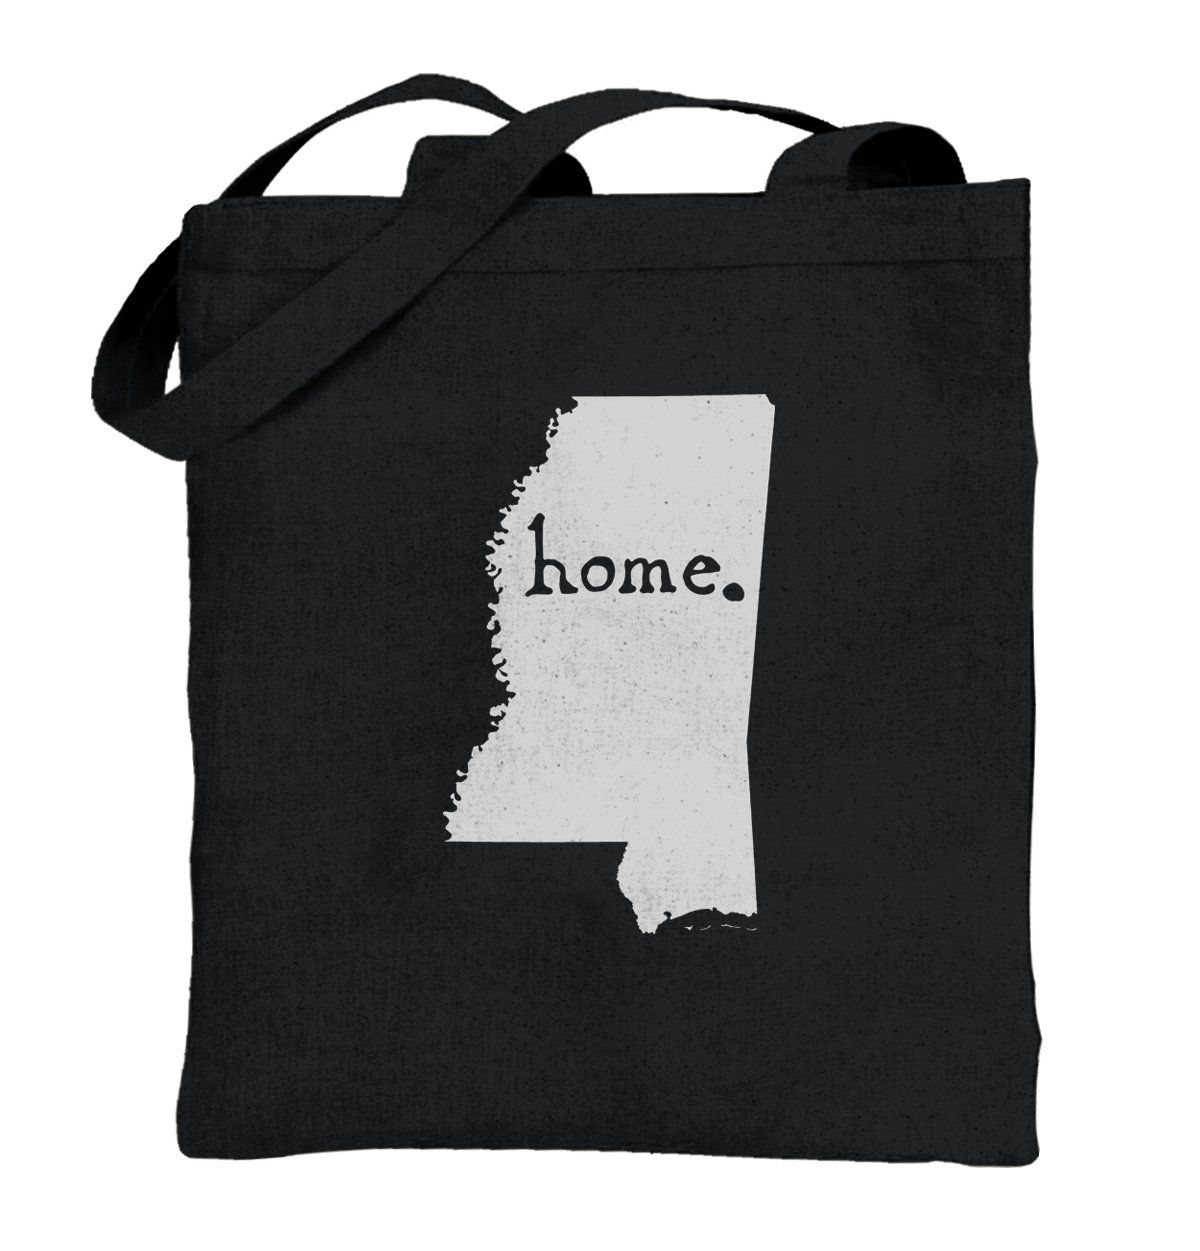 Mississippi State Shirt State Pride USA T Novelty Gift Ideas Cotton Tote Bag. 100% cotton canvas, 6 oz. Size: 15 x 16. 22 reinforced self-fabric handles. Tote it in style. Designed and printed in the USA using ecofriendly inks with a butter soft hand. We've paid attention to, and perfected, every detail... and it makes all the difference, between just any bag and a bag that's loved! (Image tones var. Express your fashion sense with one of our printed totes. Great gift for yourself…